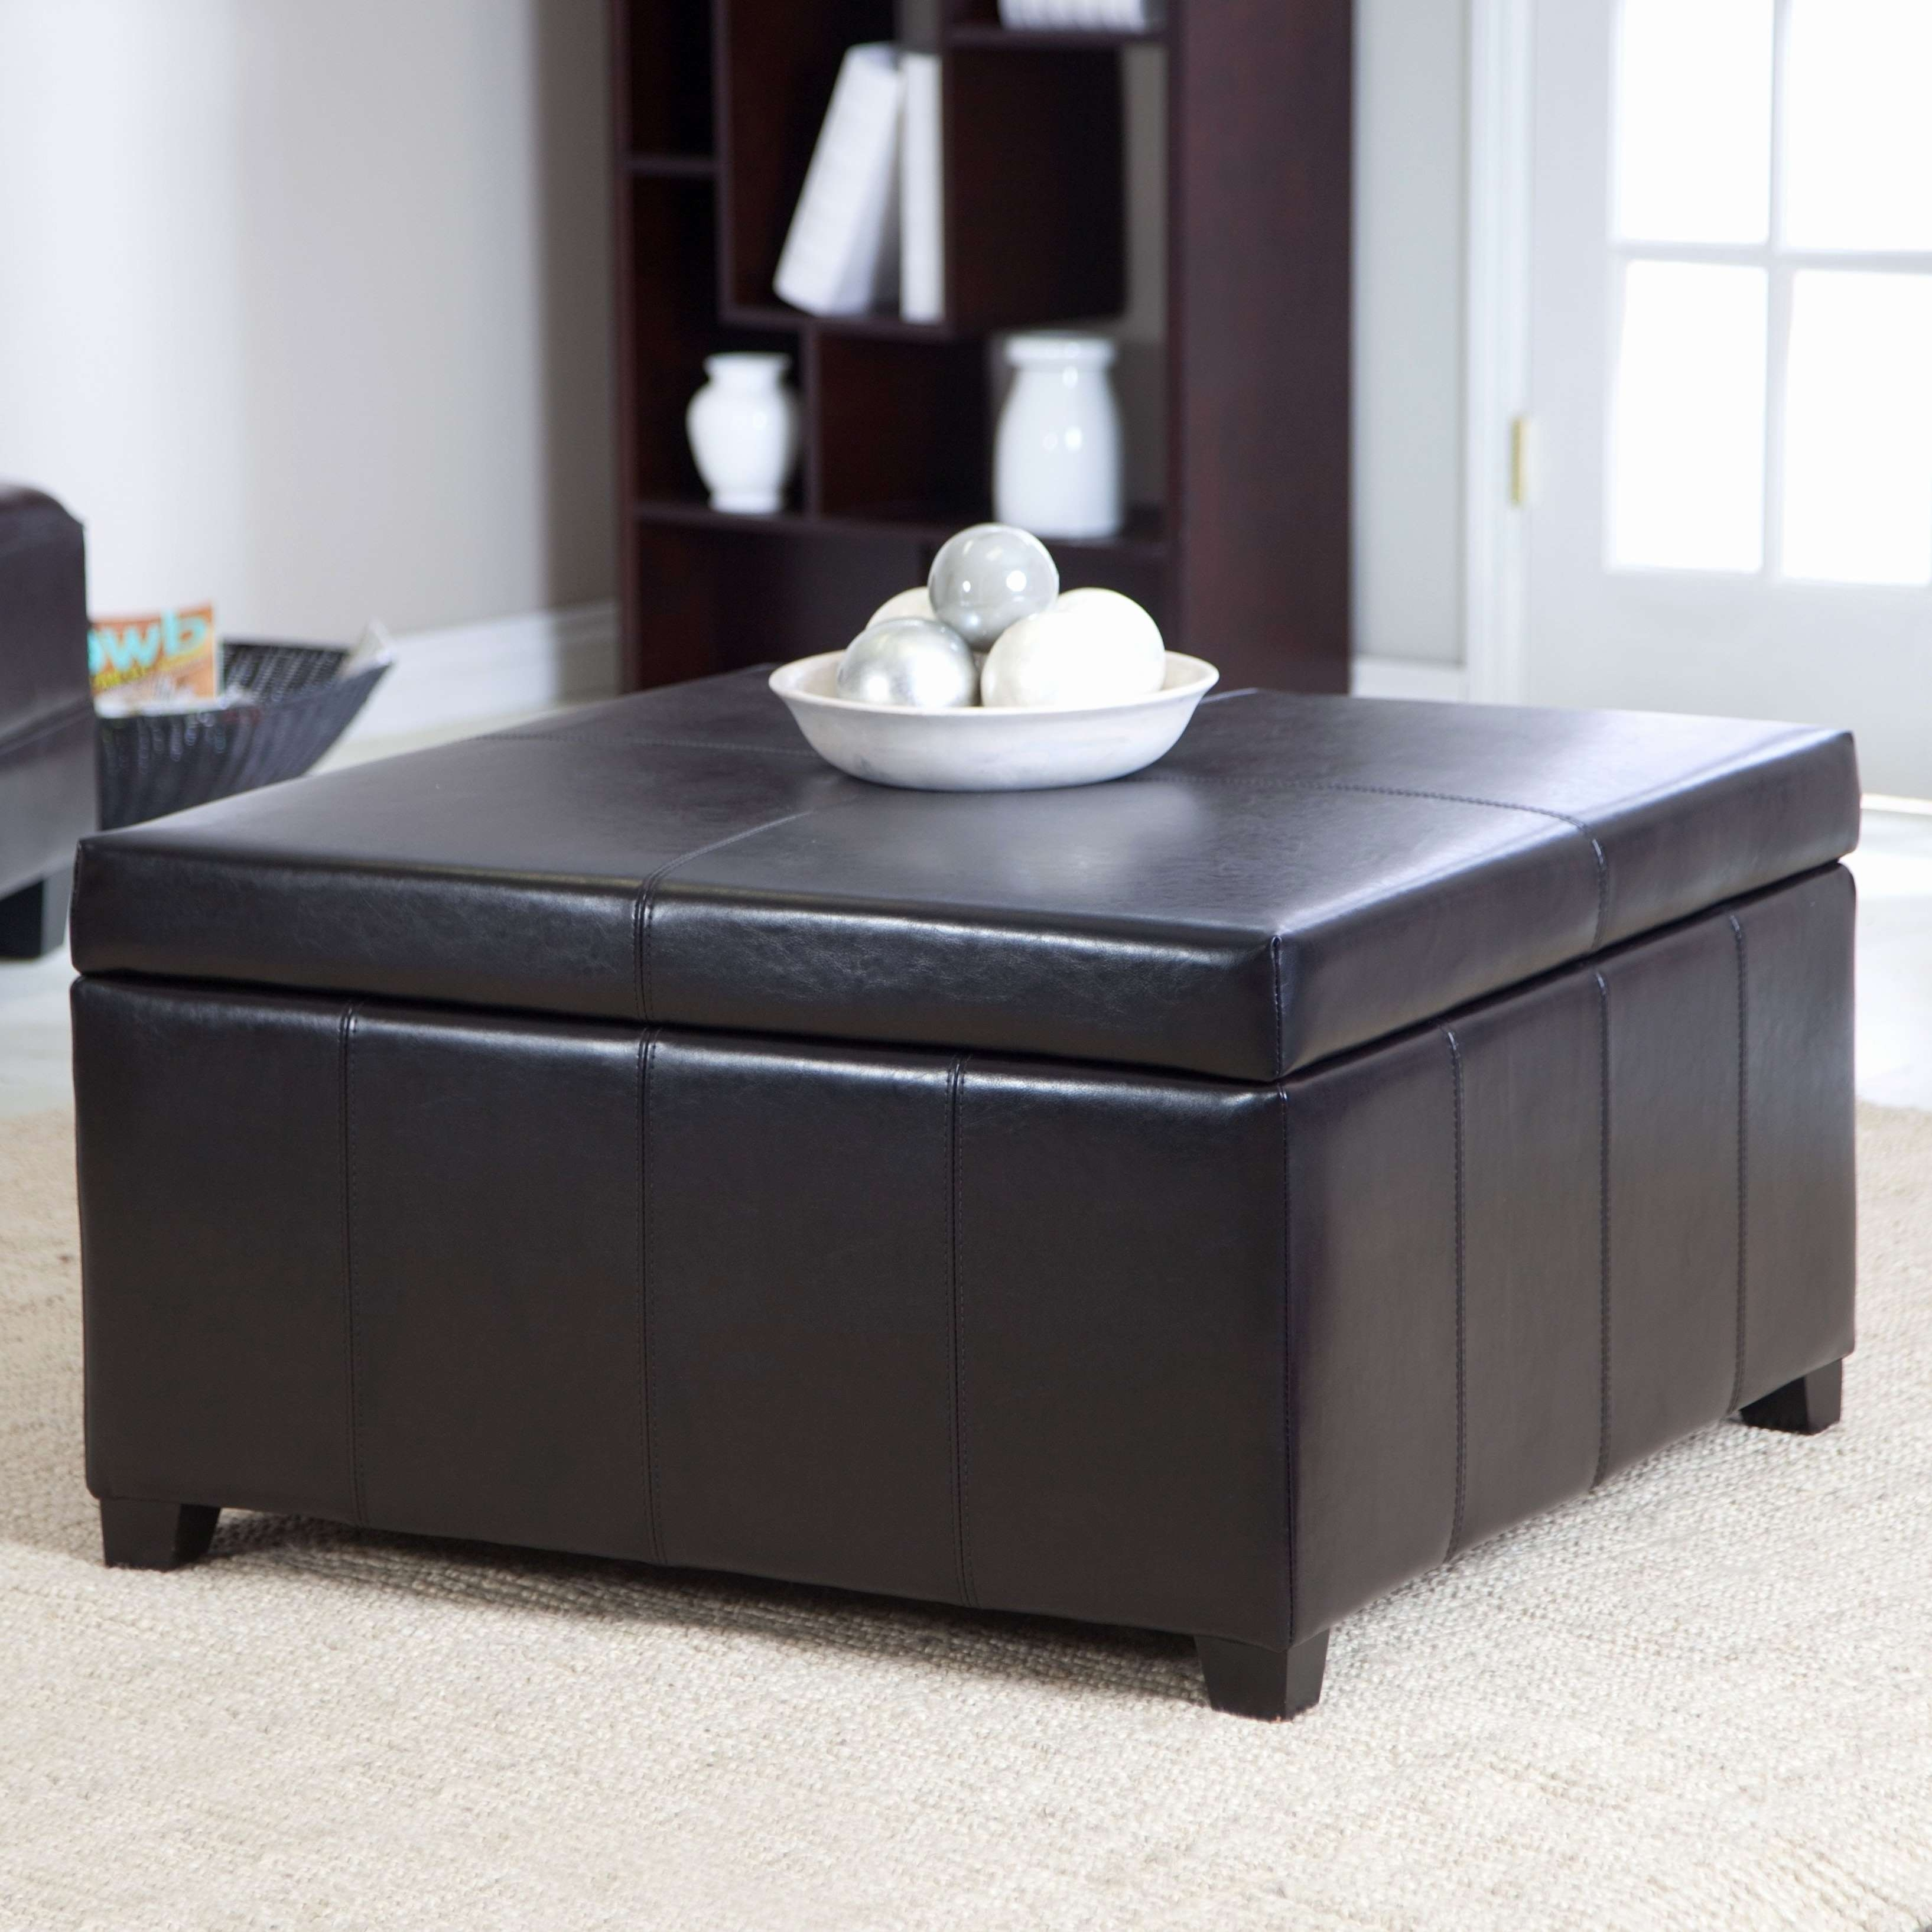 Current Modern Coffee Tables With Storage For 54 Unique Modern Coffee Table With Storage – Home Furniture Ideas (View 8 of 20)